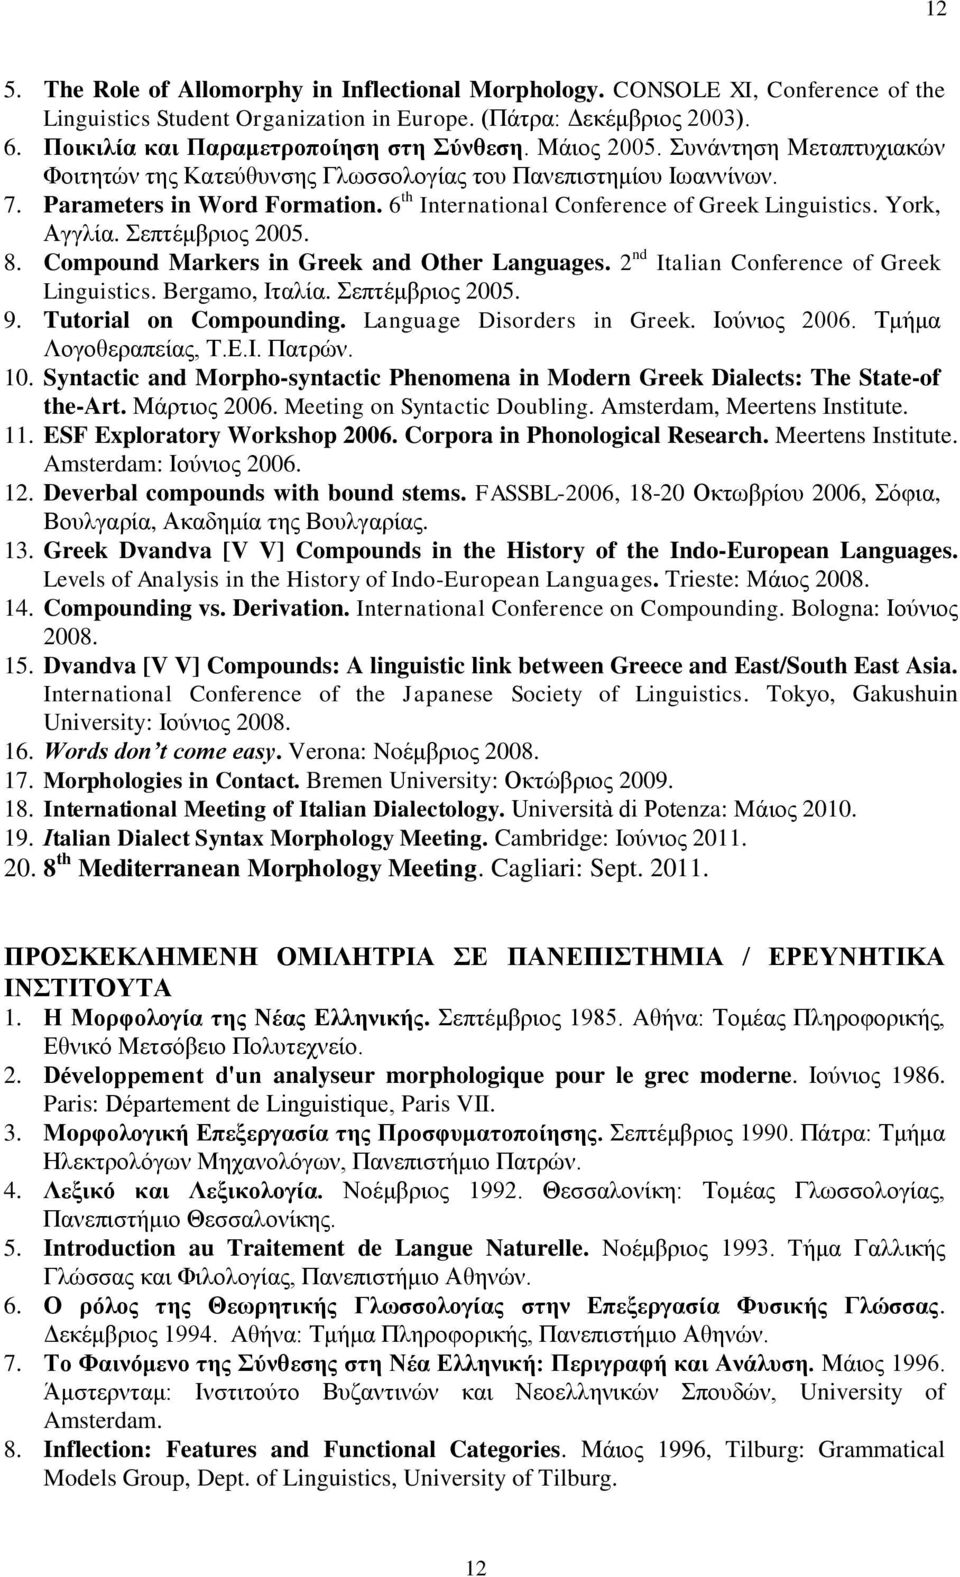 6 th International Conference of Greek Linguistics. York, Αγγλία. Σεπτέμβριος 2005. 8. Compound Markers in Greek and Other Languages. 2 nd Italian Conference of Greek Linguistics. Bergamo, Iταλία.